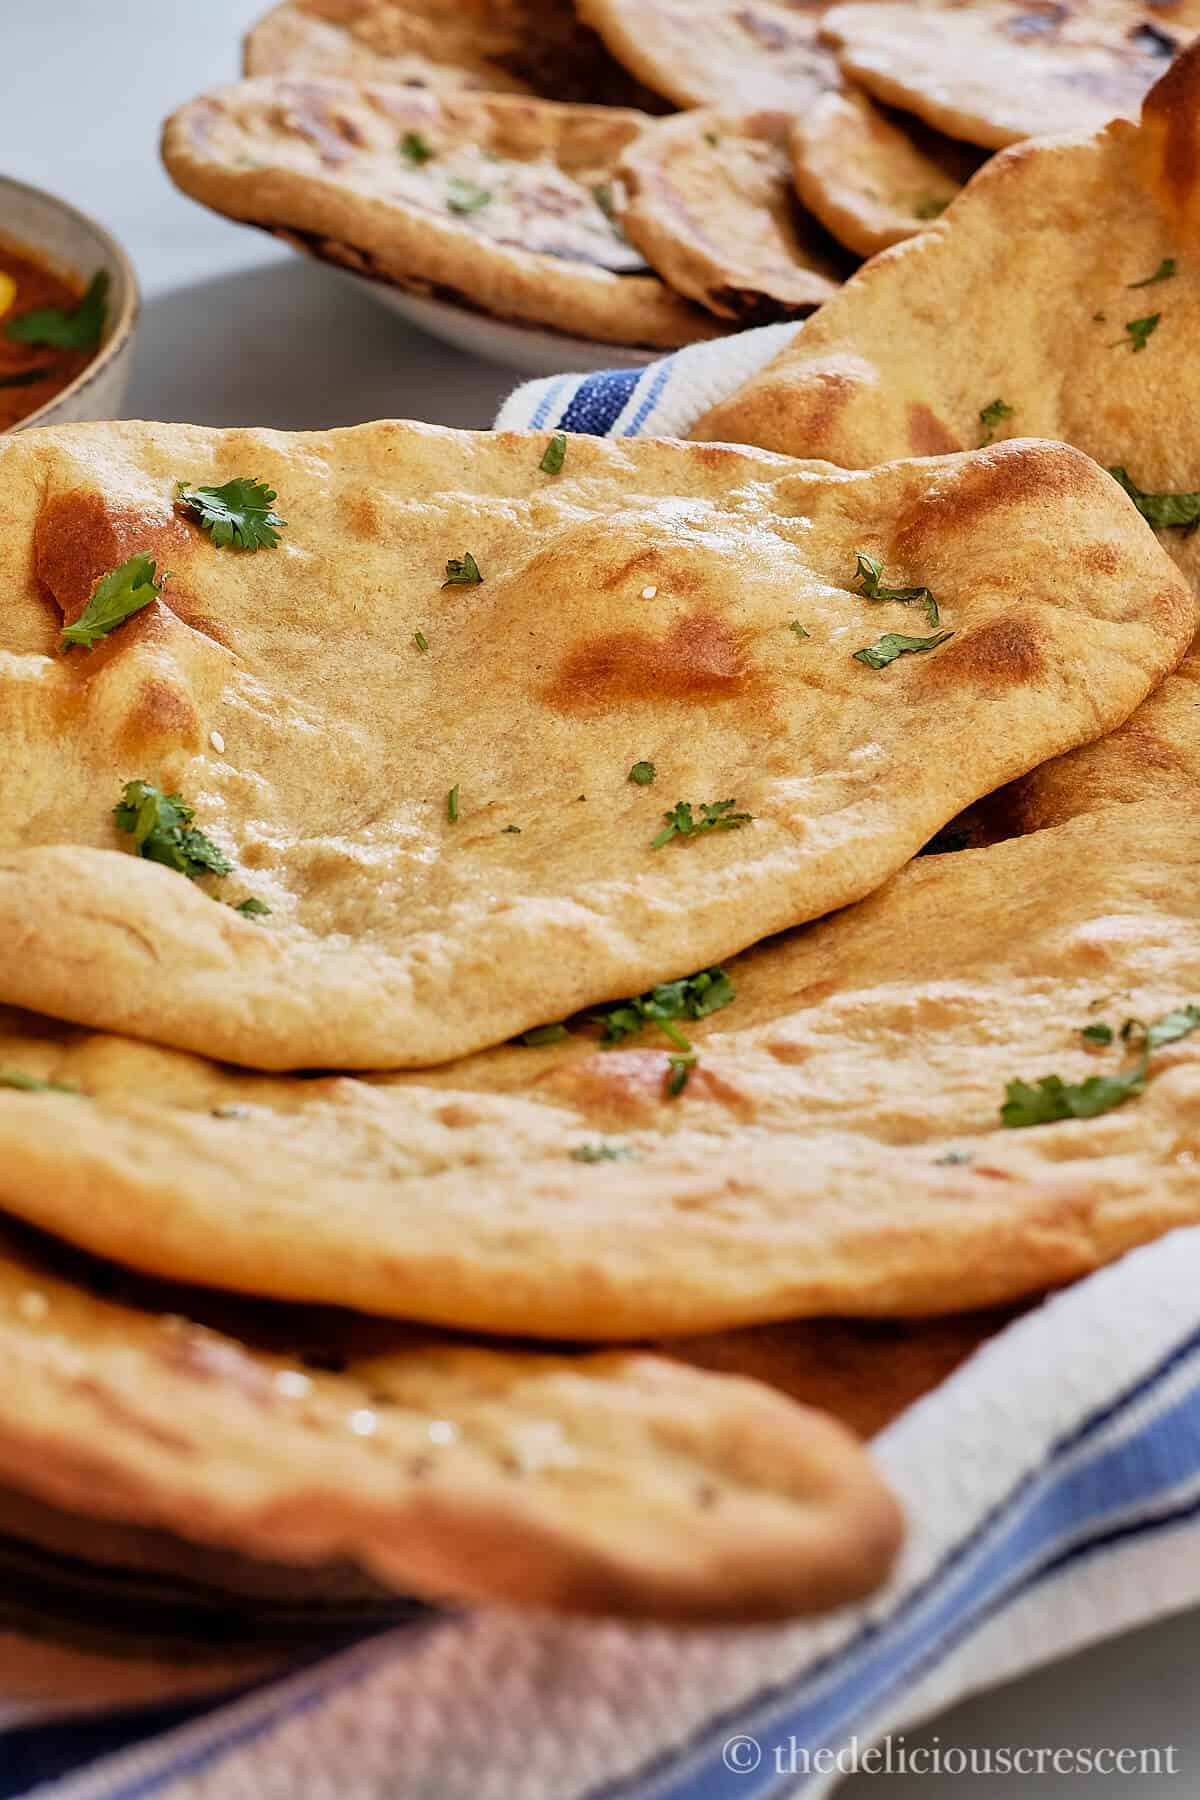 A stack of whole grain naans in a basket.